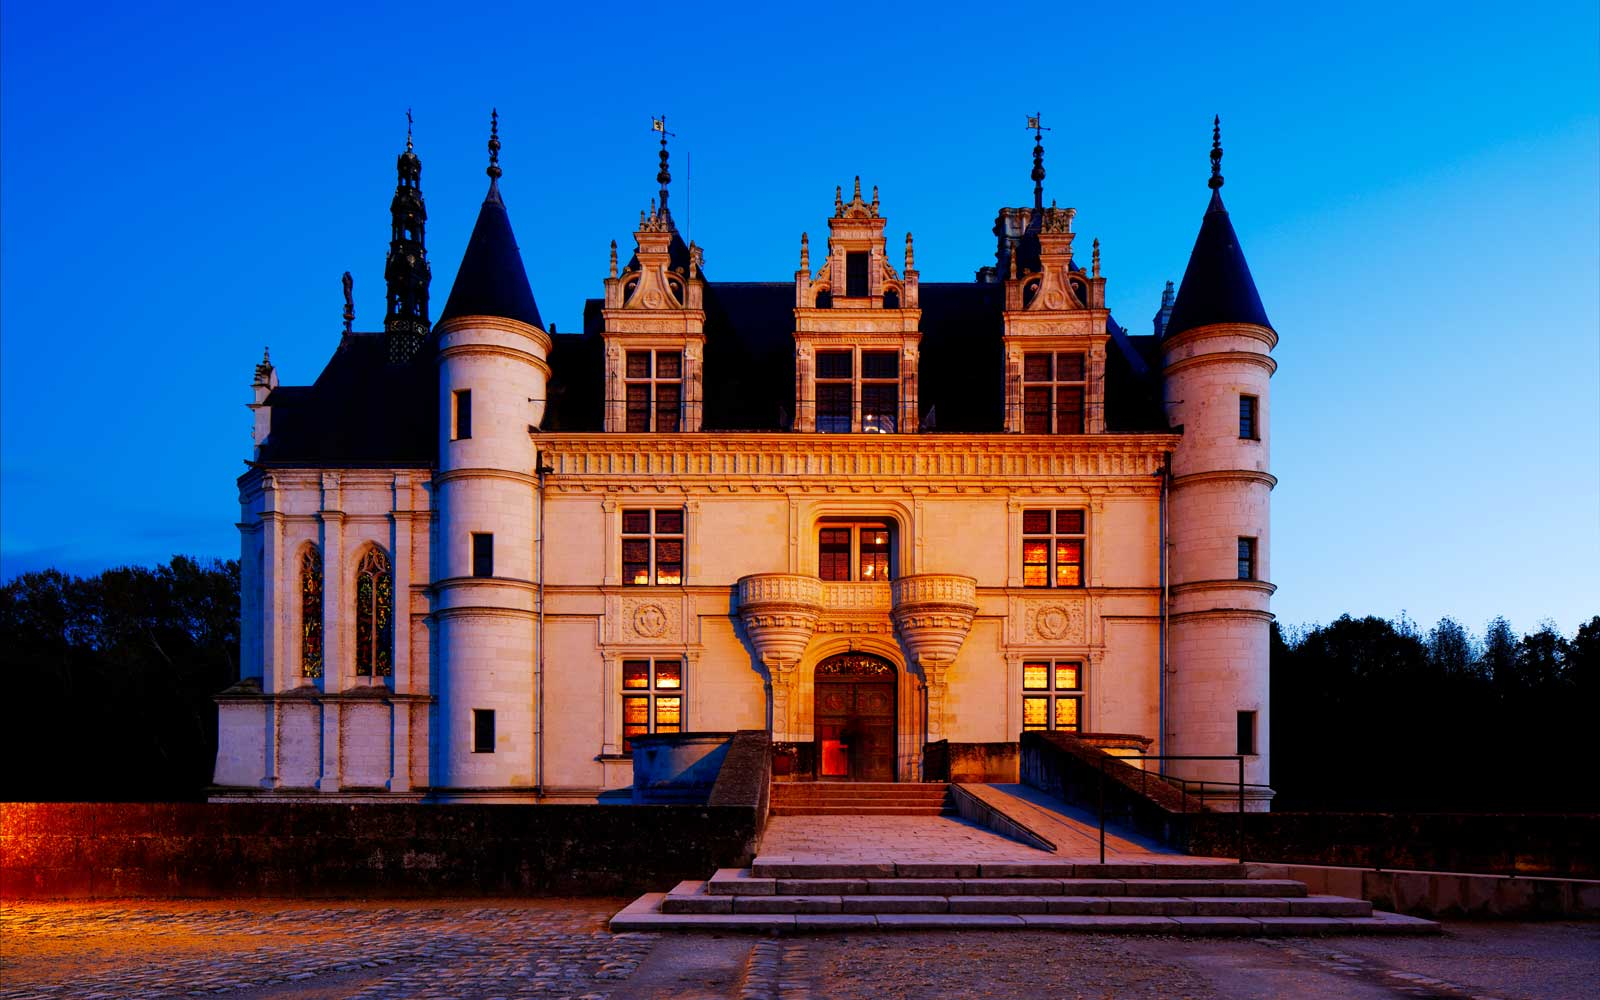 Castle of Chenonceau is located near the small village of Chenonceaux on the Loire Valley in France